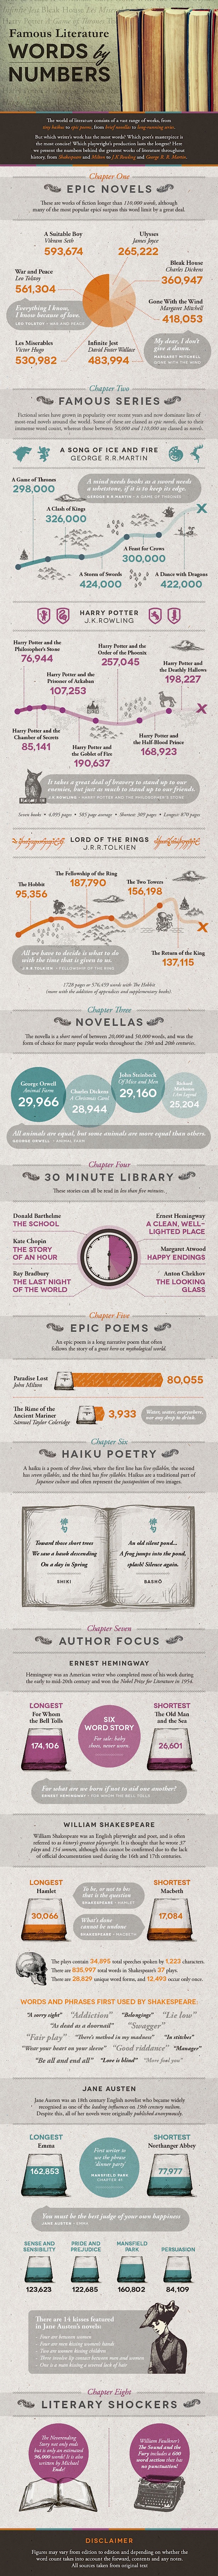 Famous Books by Number of Words infographic